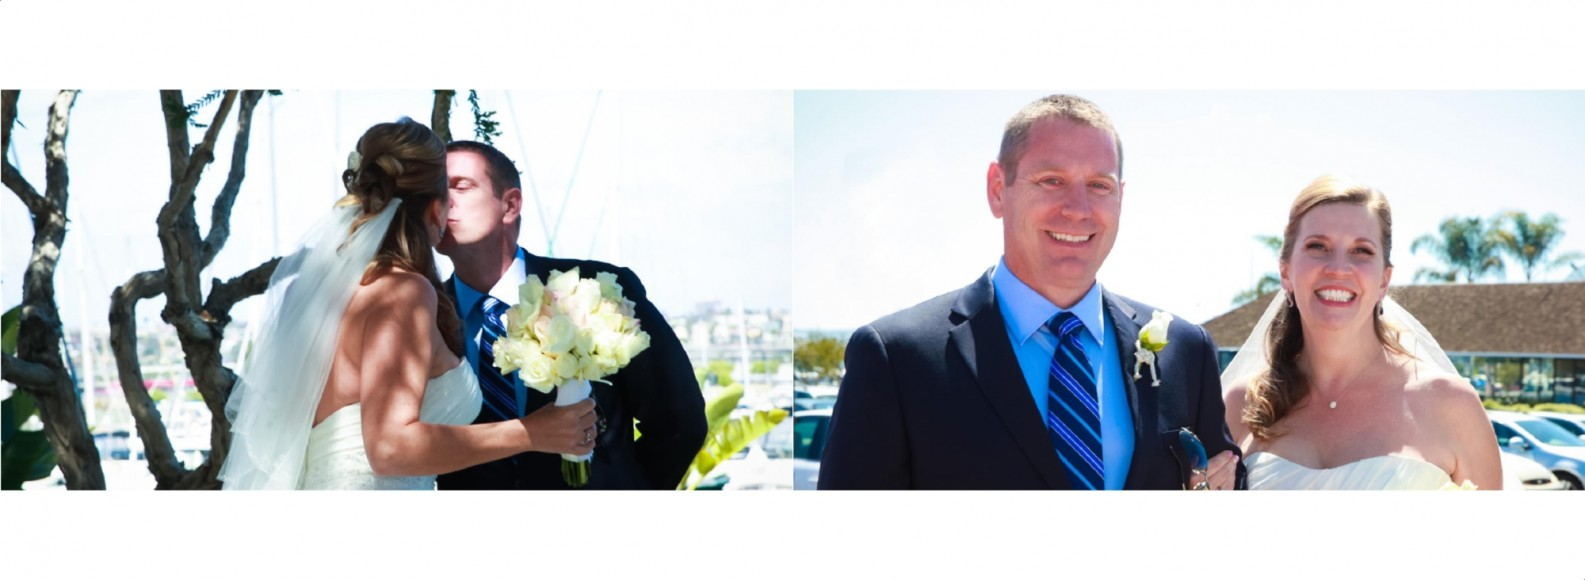 Laura and Davids Wedding Book - San Diego Yacht Wedding by Wedding Photographers Andrew Abouna - Pages 8-9